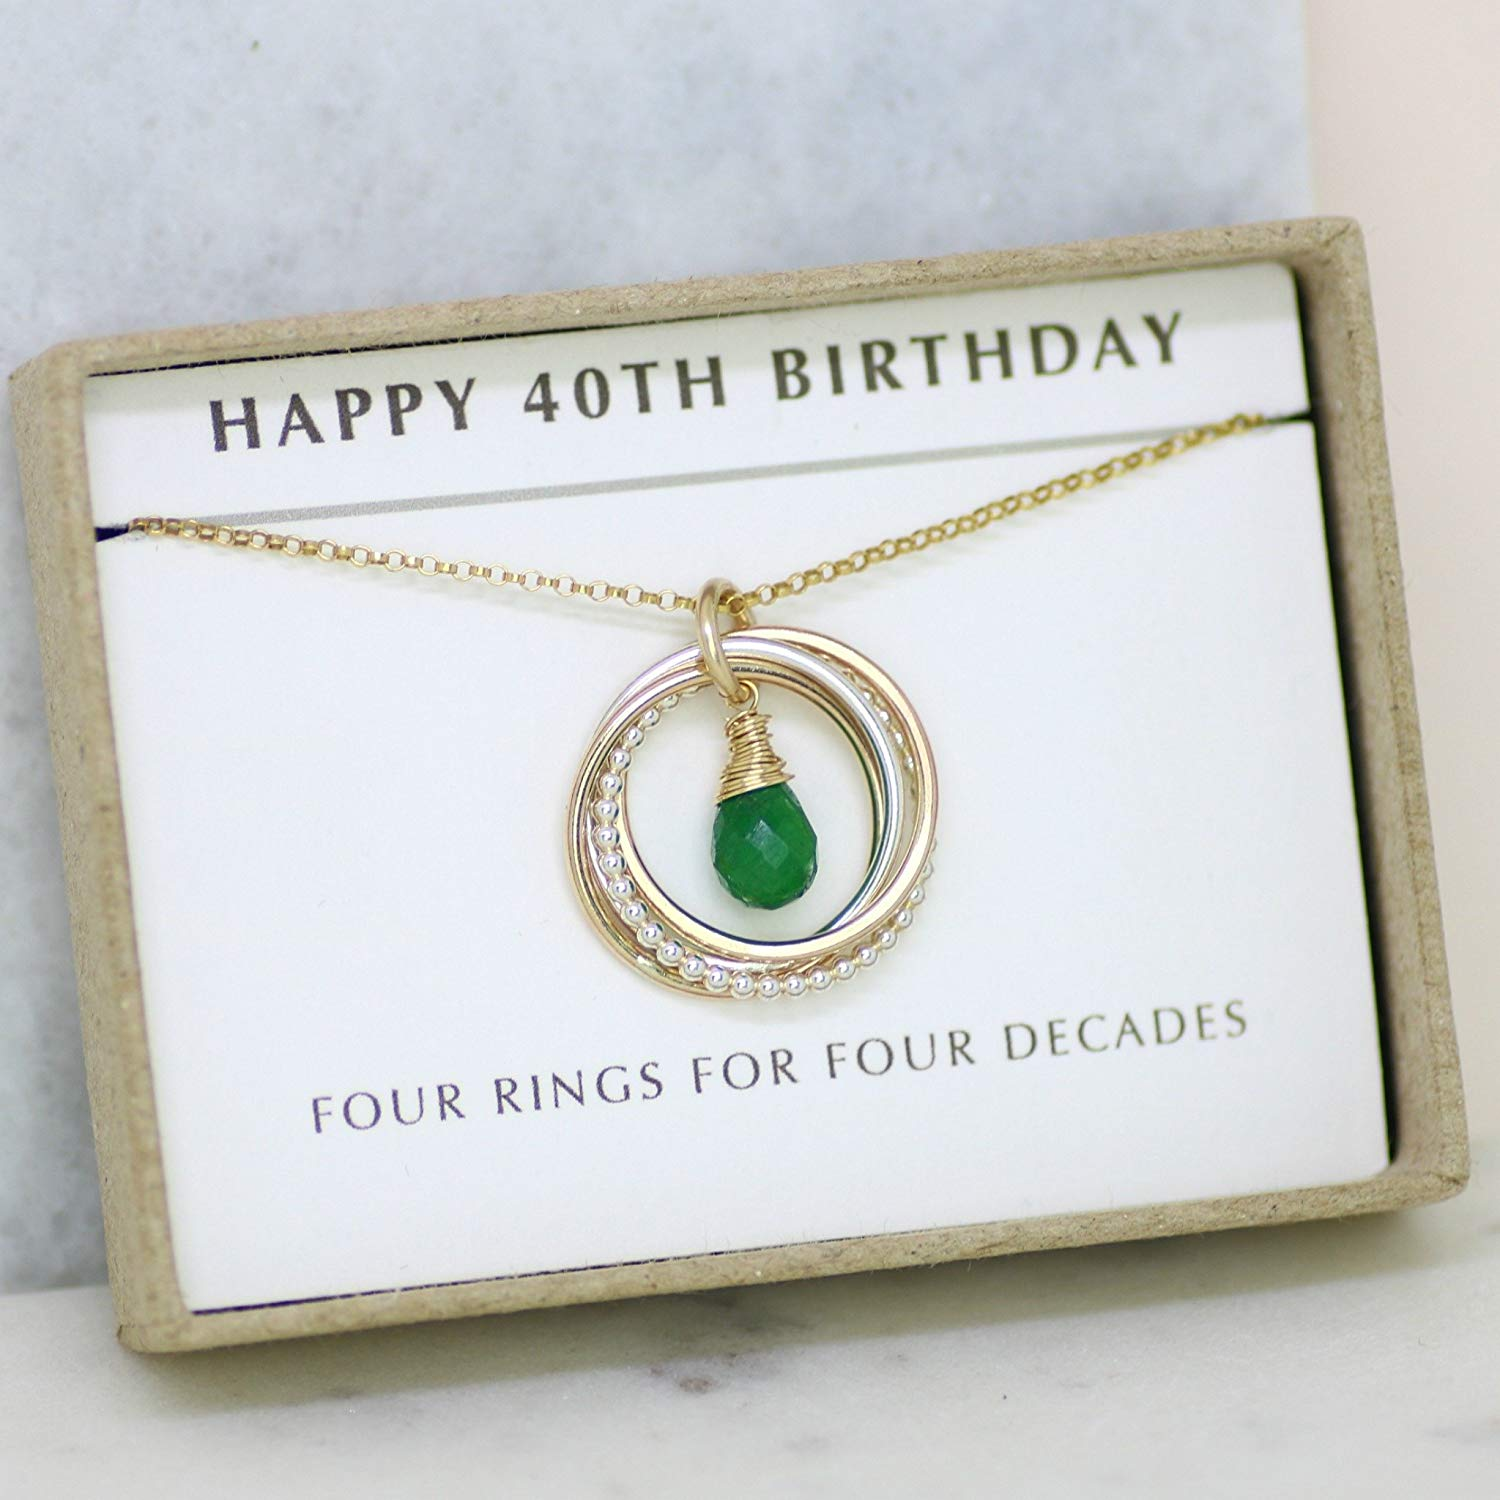 40th birthday gift, May birthstone necklace 40th, emerald necklace for 40th birthday, gift for daughter, wife, sister - Lilia